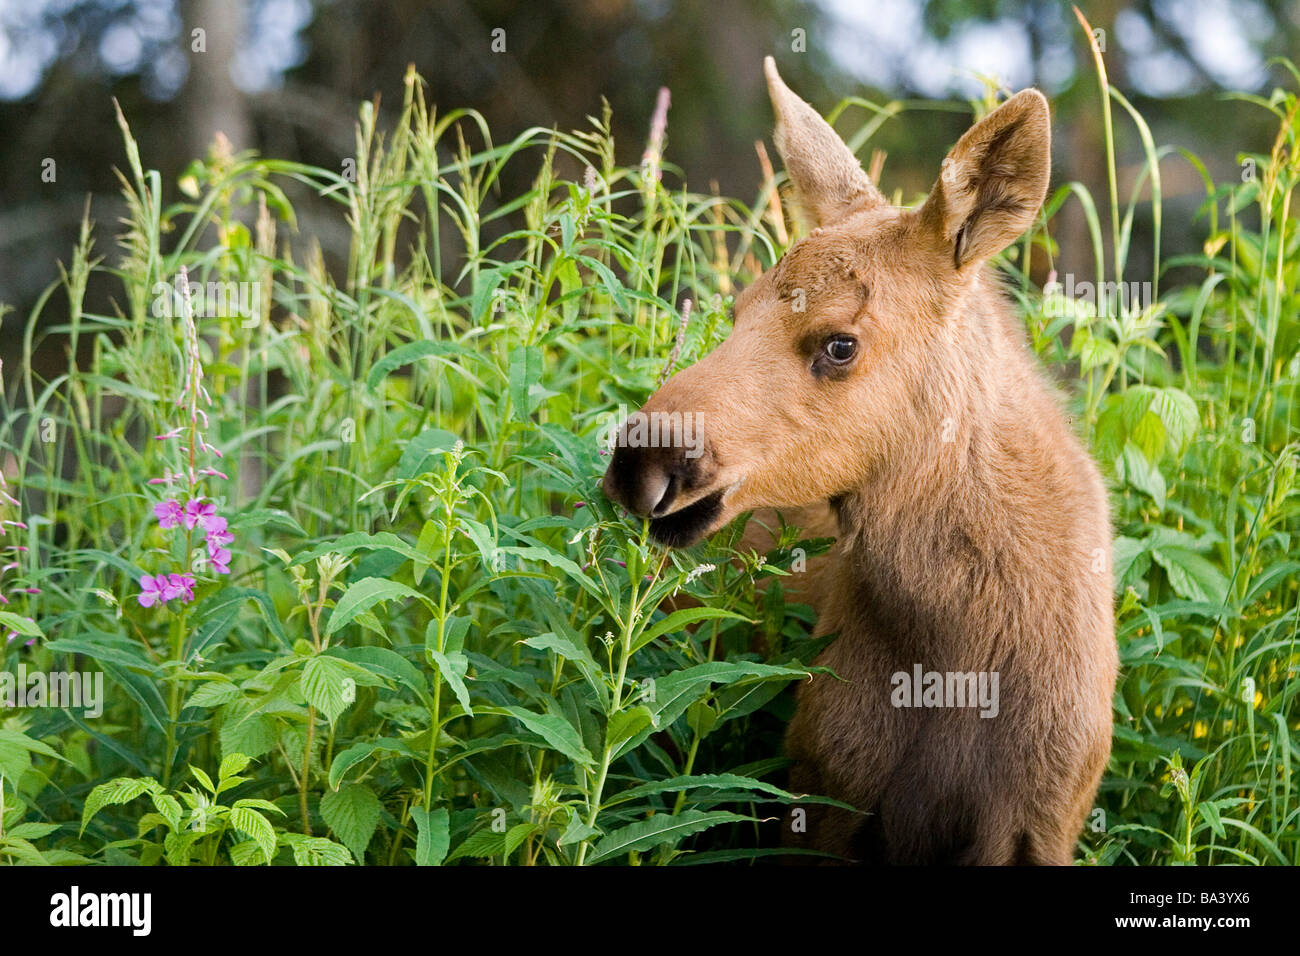 Young moose calf standing in Fireweed in Anchorage back yard Alaska Summer - Stock Image